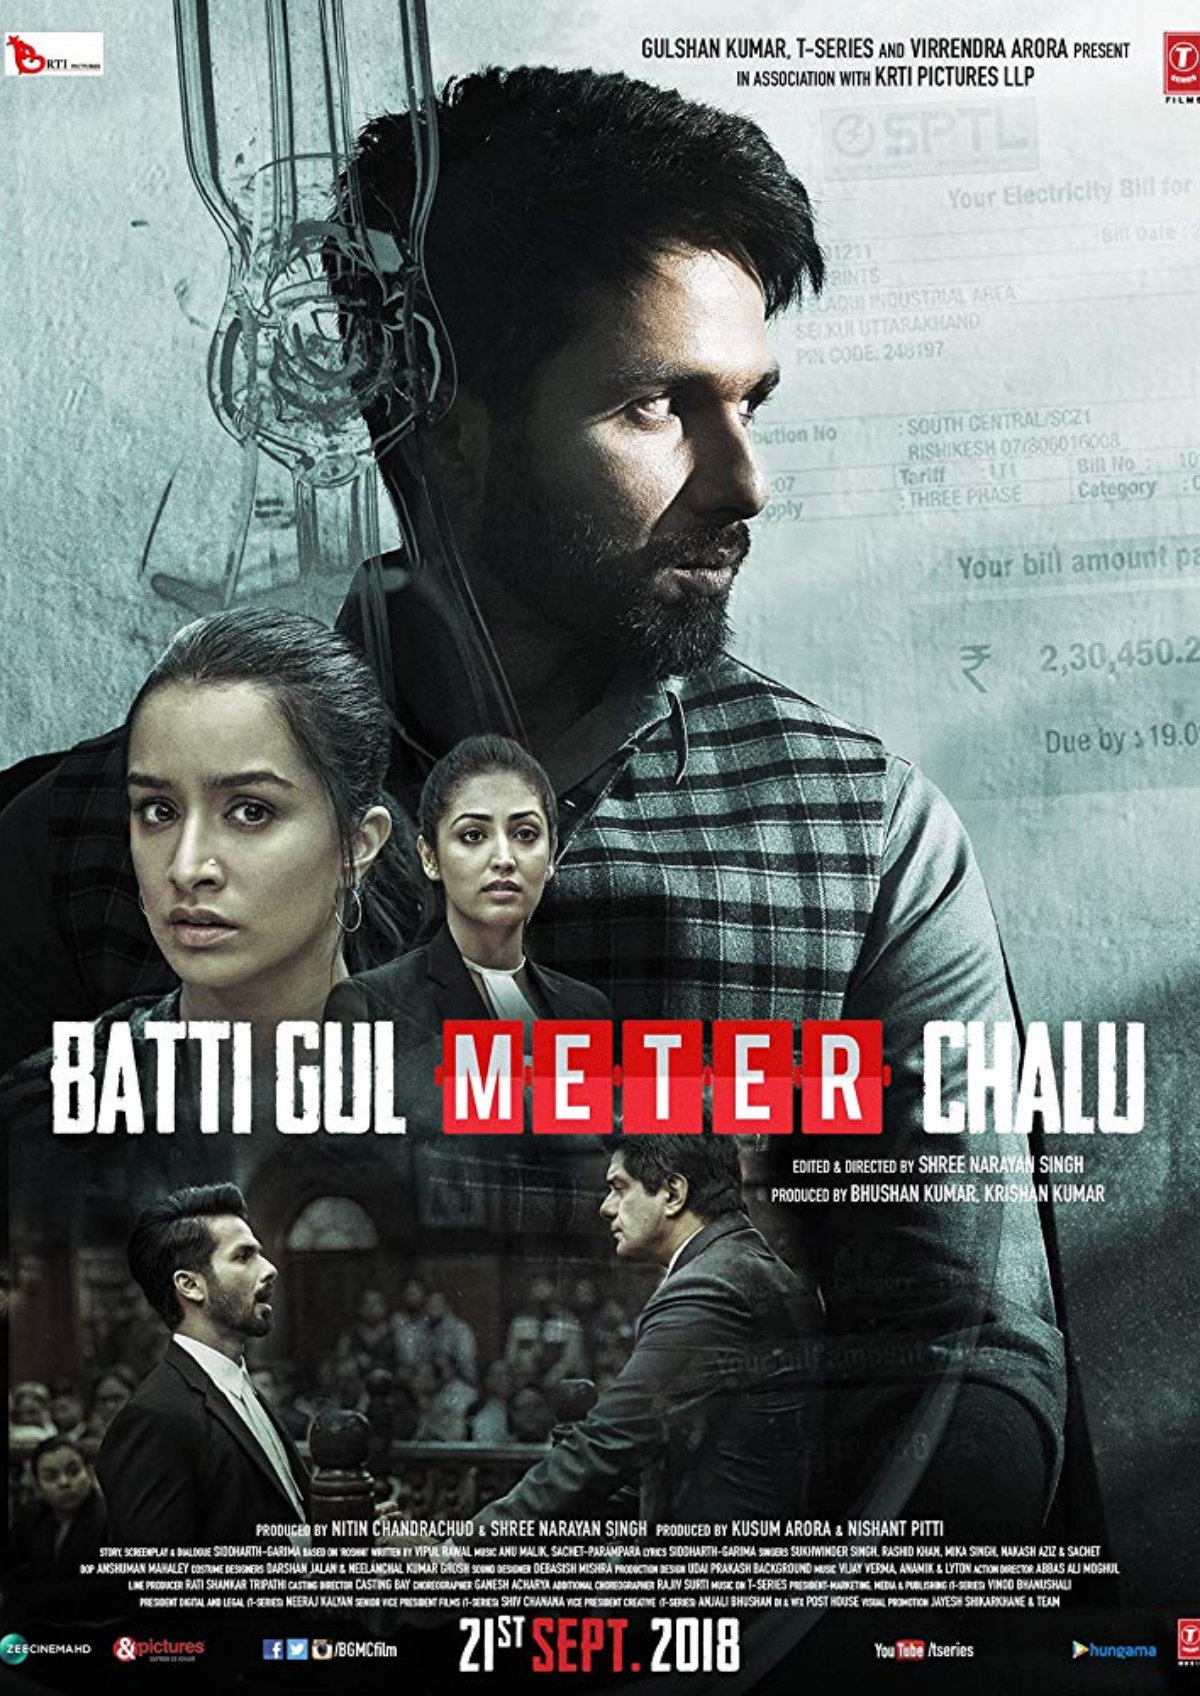 'Batti Gul Meter Chalu' movie poster